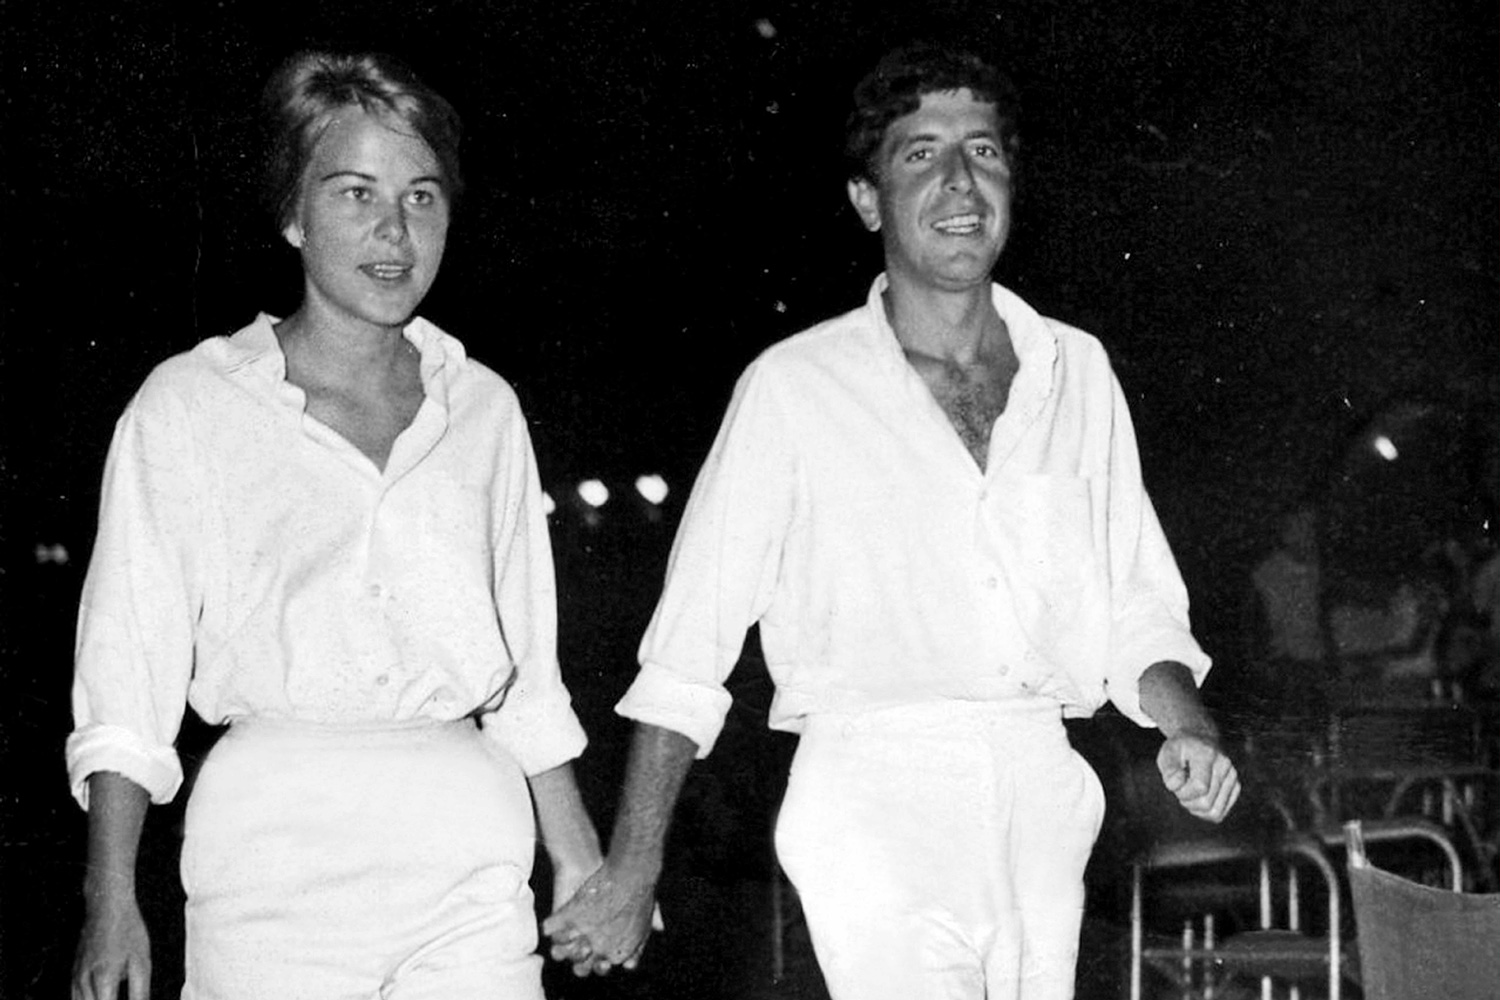 Marianne Ihlen and Leonard Cohen, featured in Nick Broomfield's 'Marianne and Leonard: Words of Love.' Courtesy of Roadside Attractions